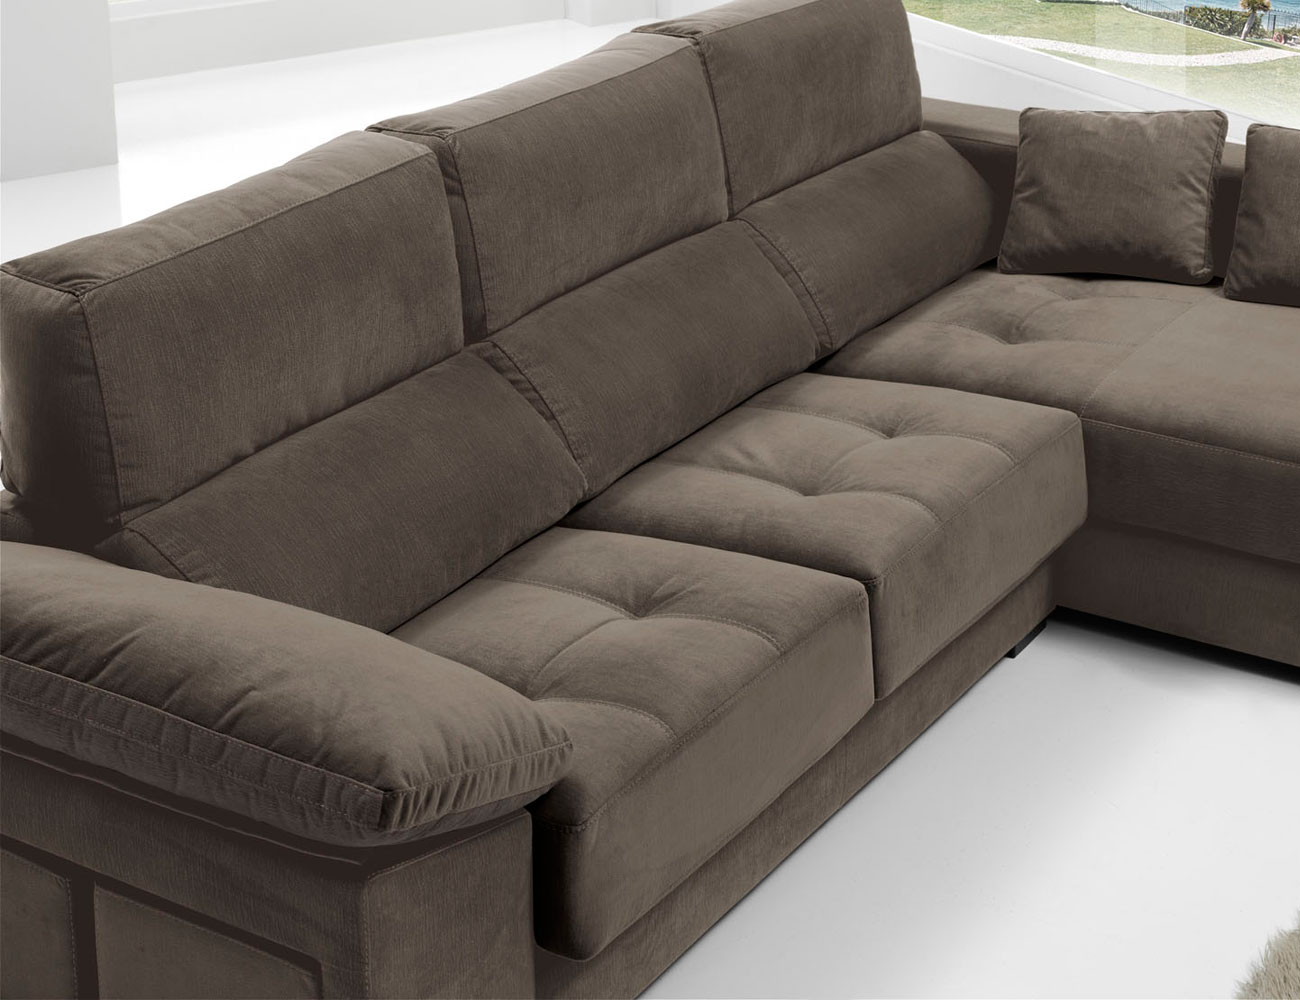 Sofa chaiselongue anti manchas bering pouf 289